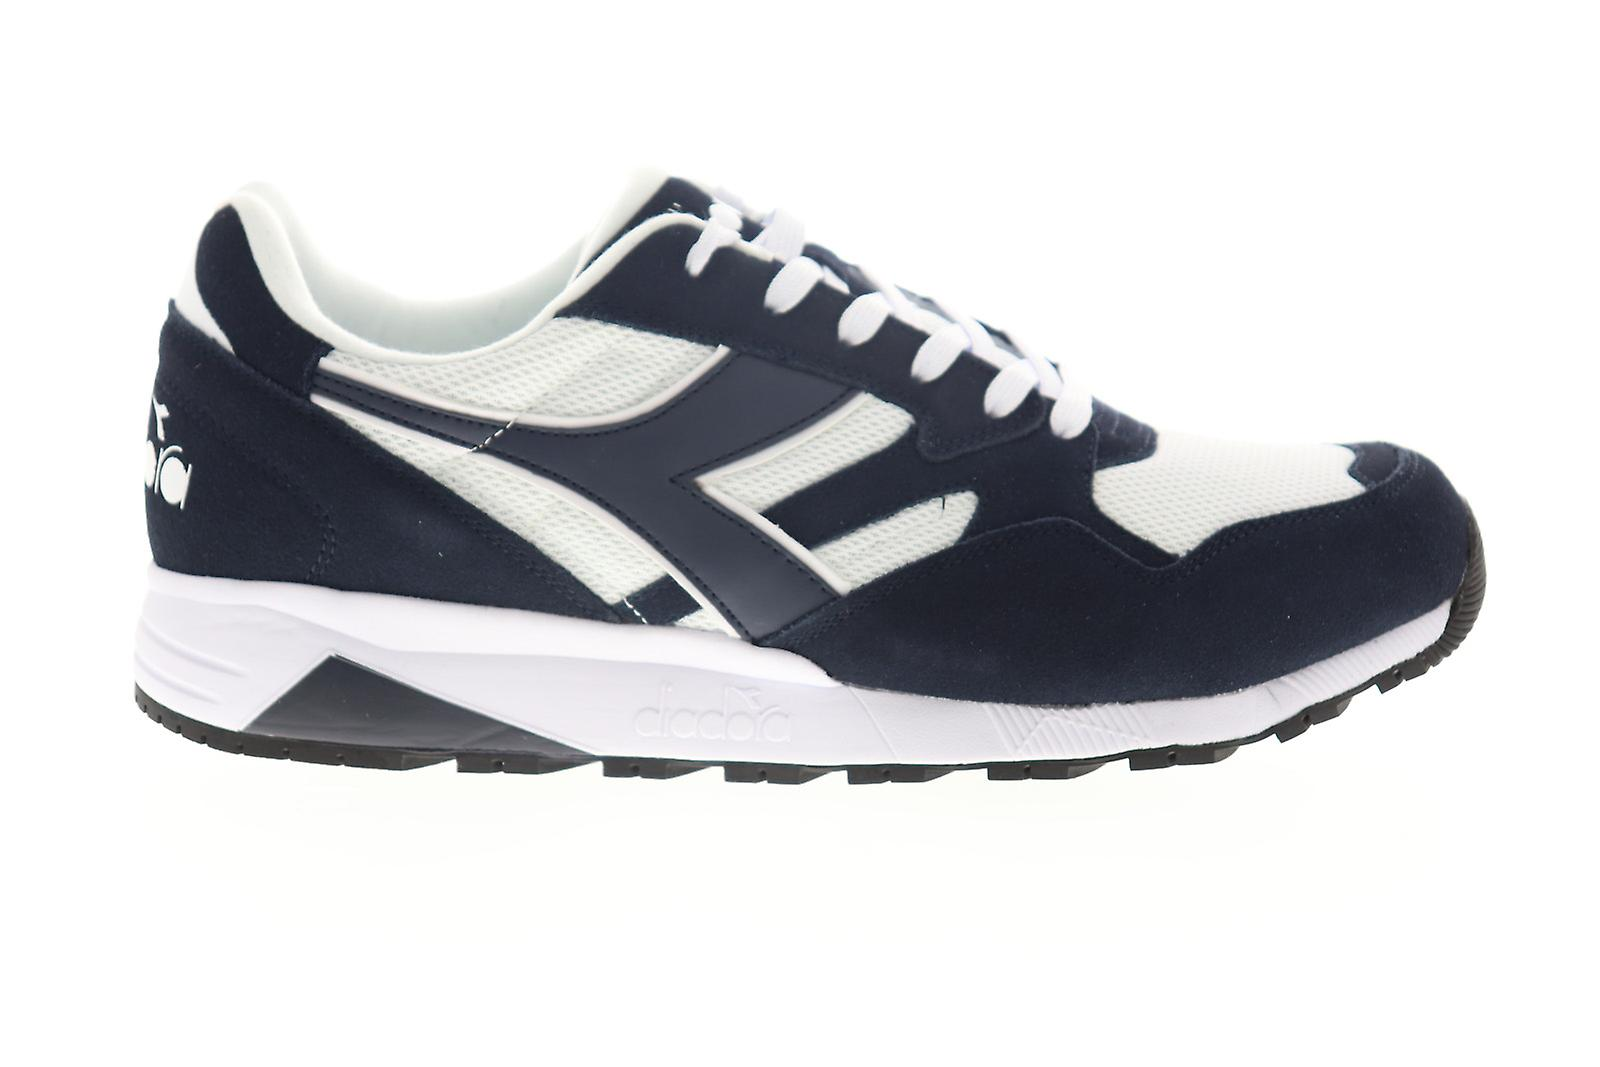 Diadora N902 S Menns Blå Mesh Lace Up Low Top Joggesko Sko